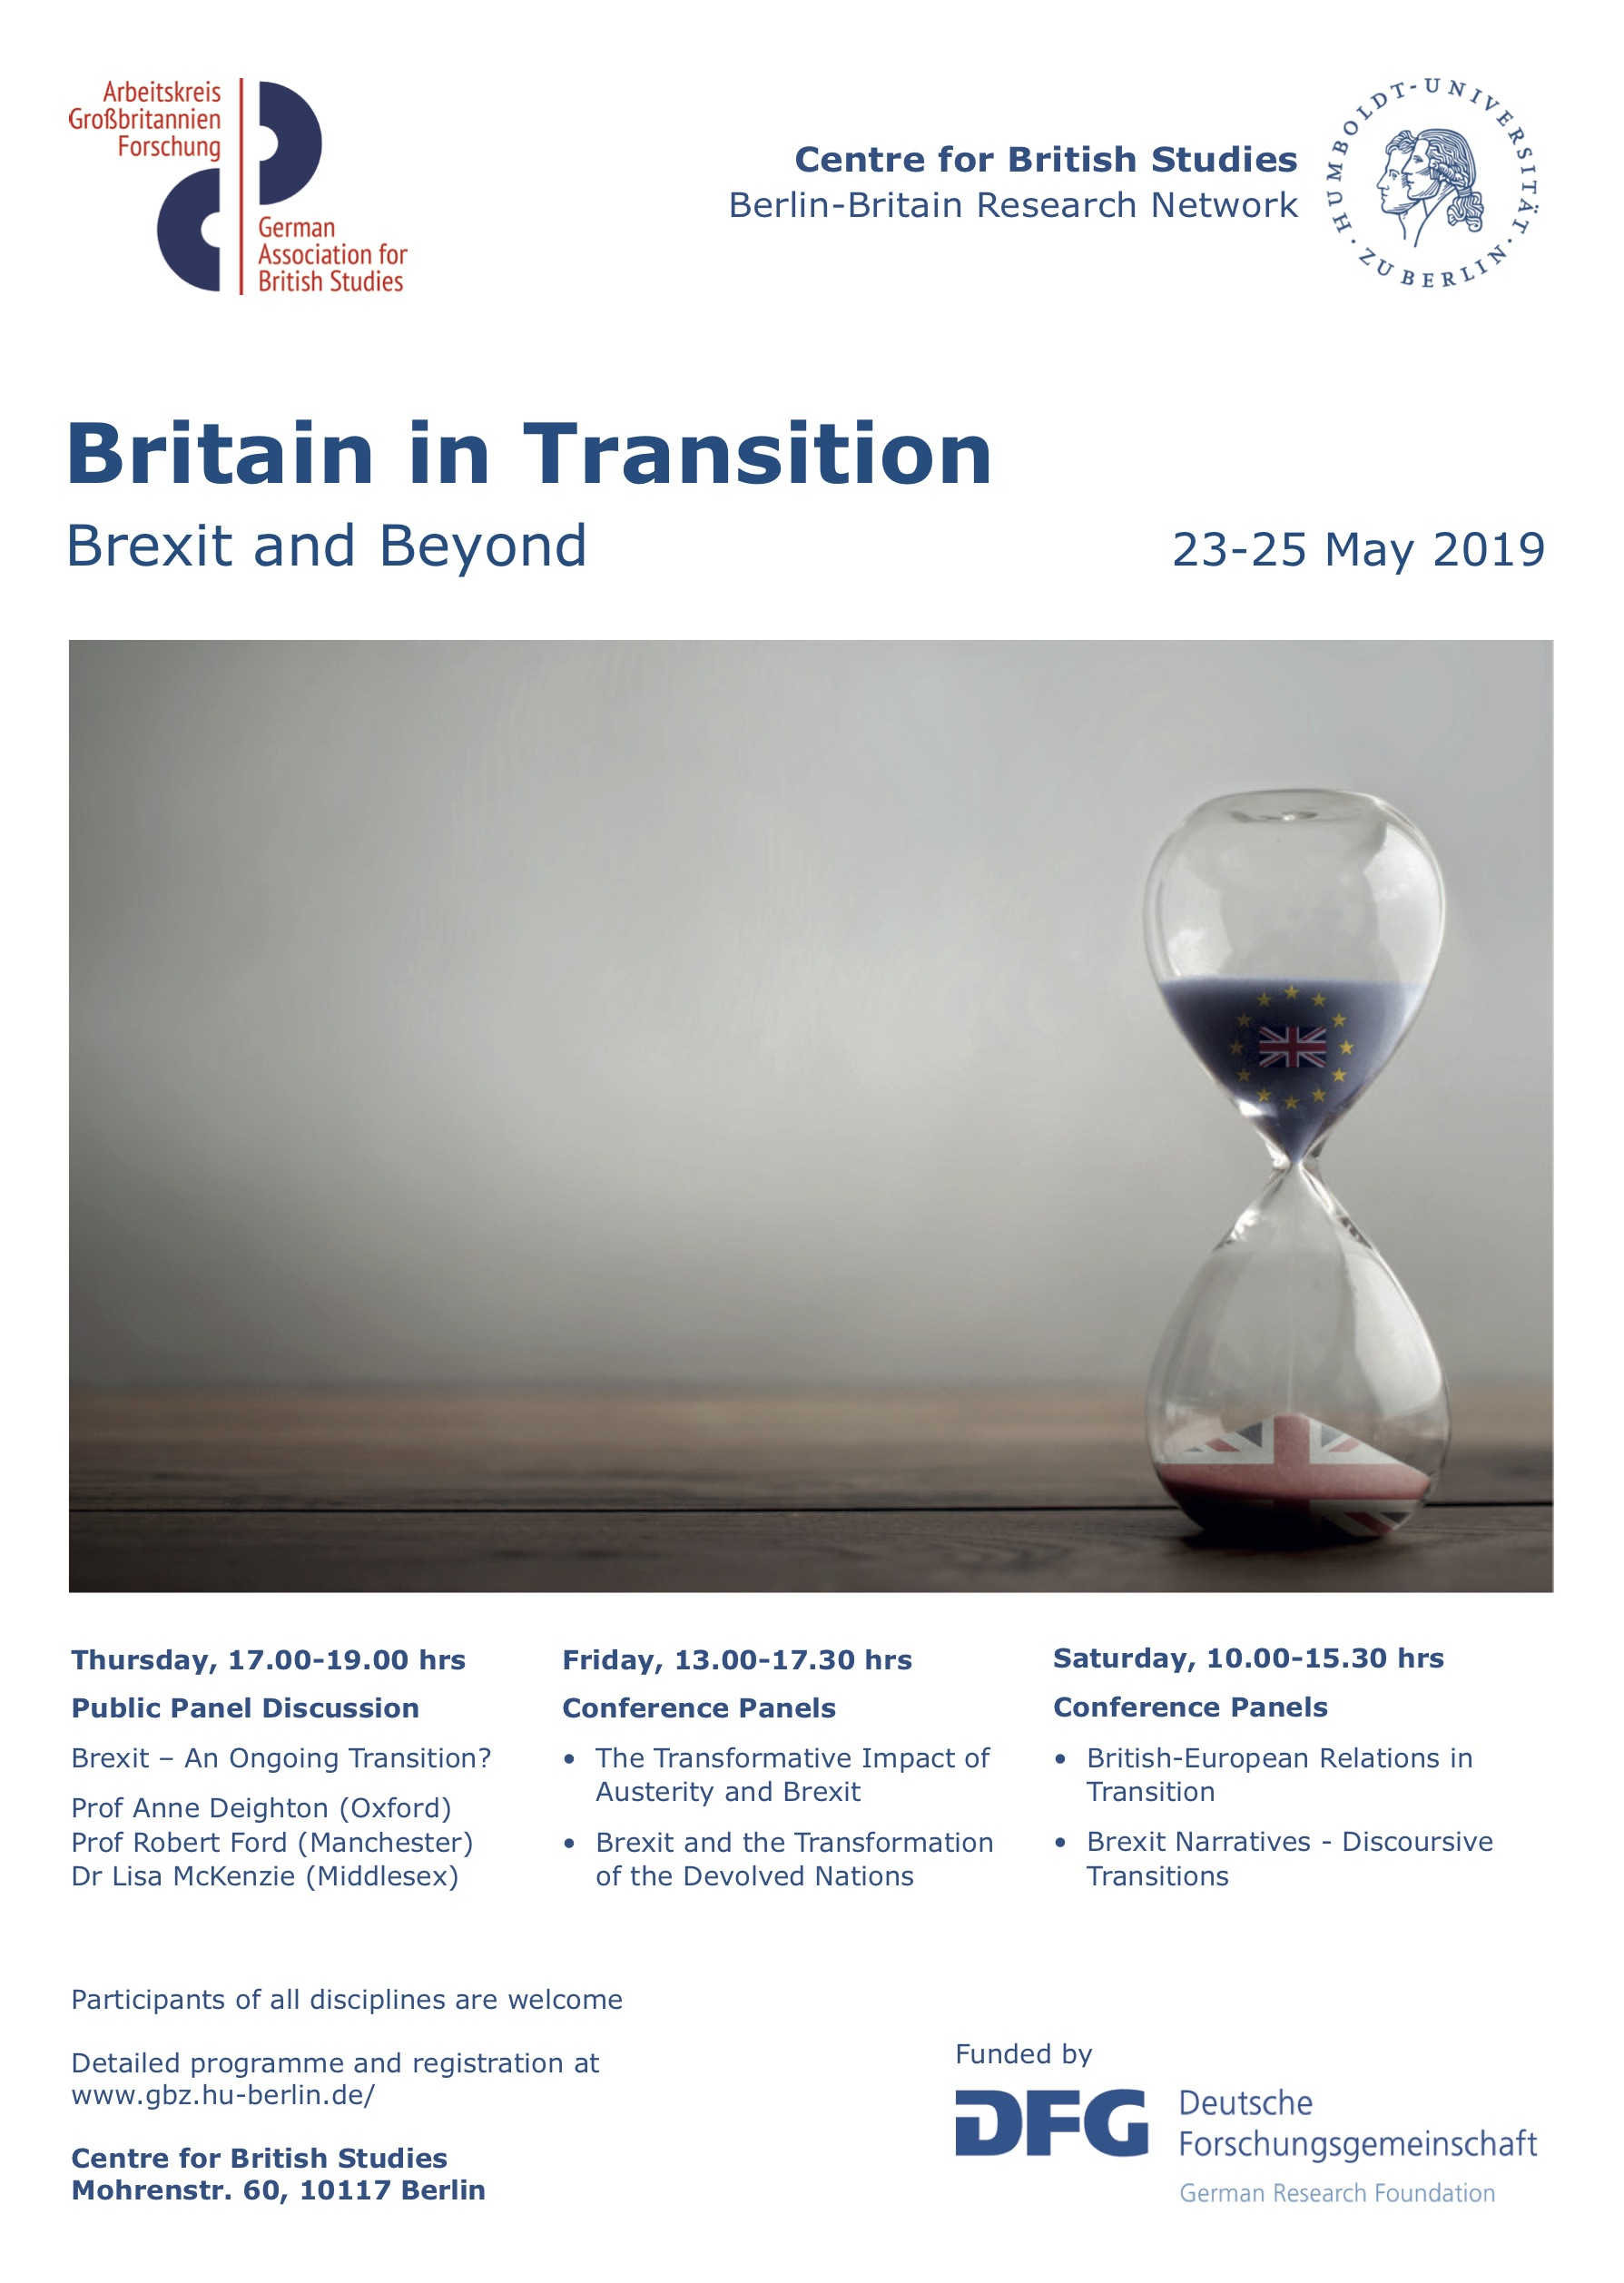 Britain in Transformation Conference Poster